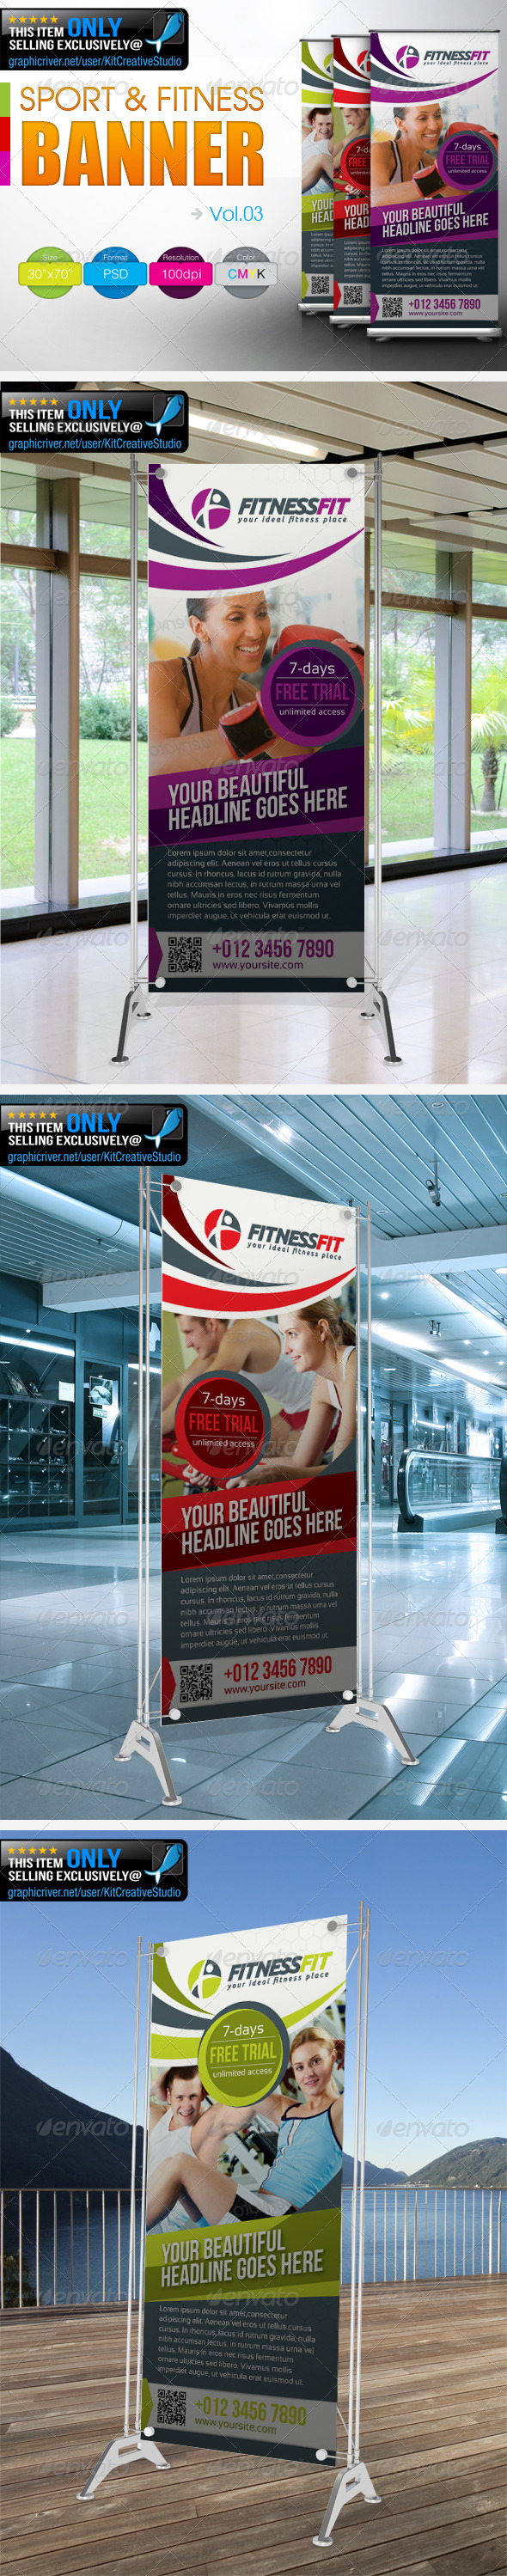 Fitness Banner Vol.3 - Signage Print Templates